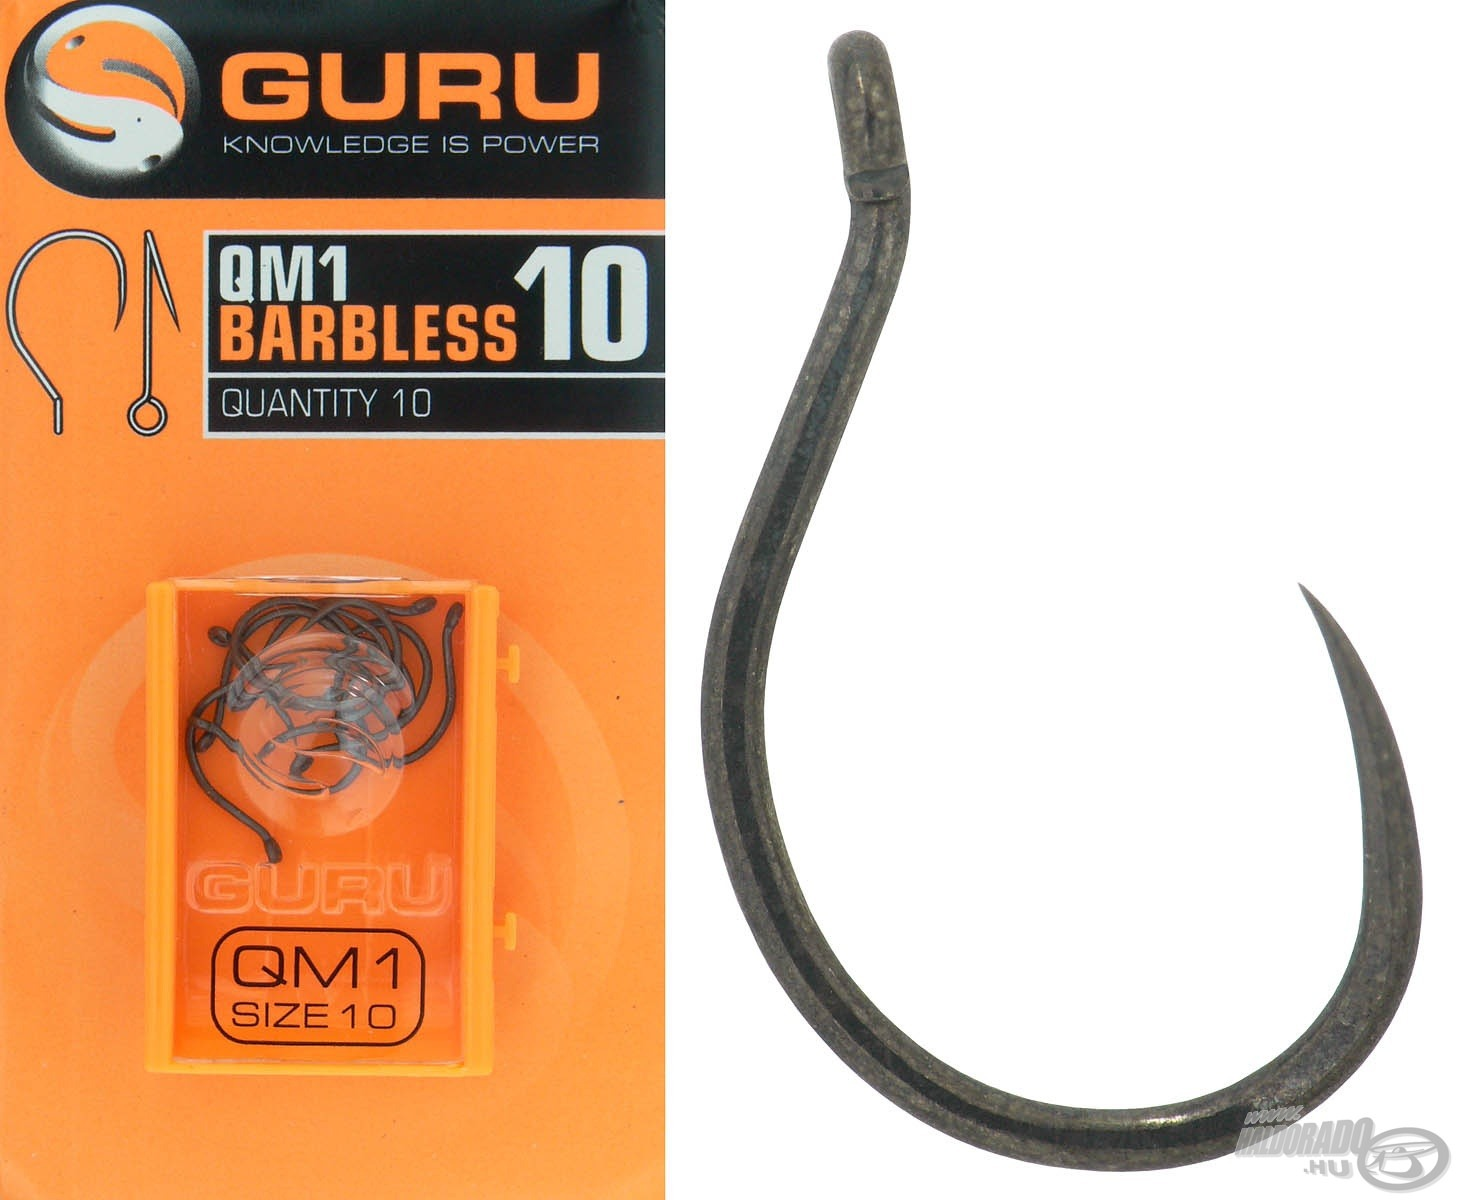 GURU, QM1 Barbless - 12